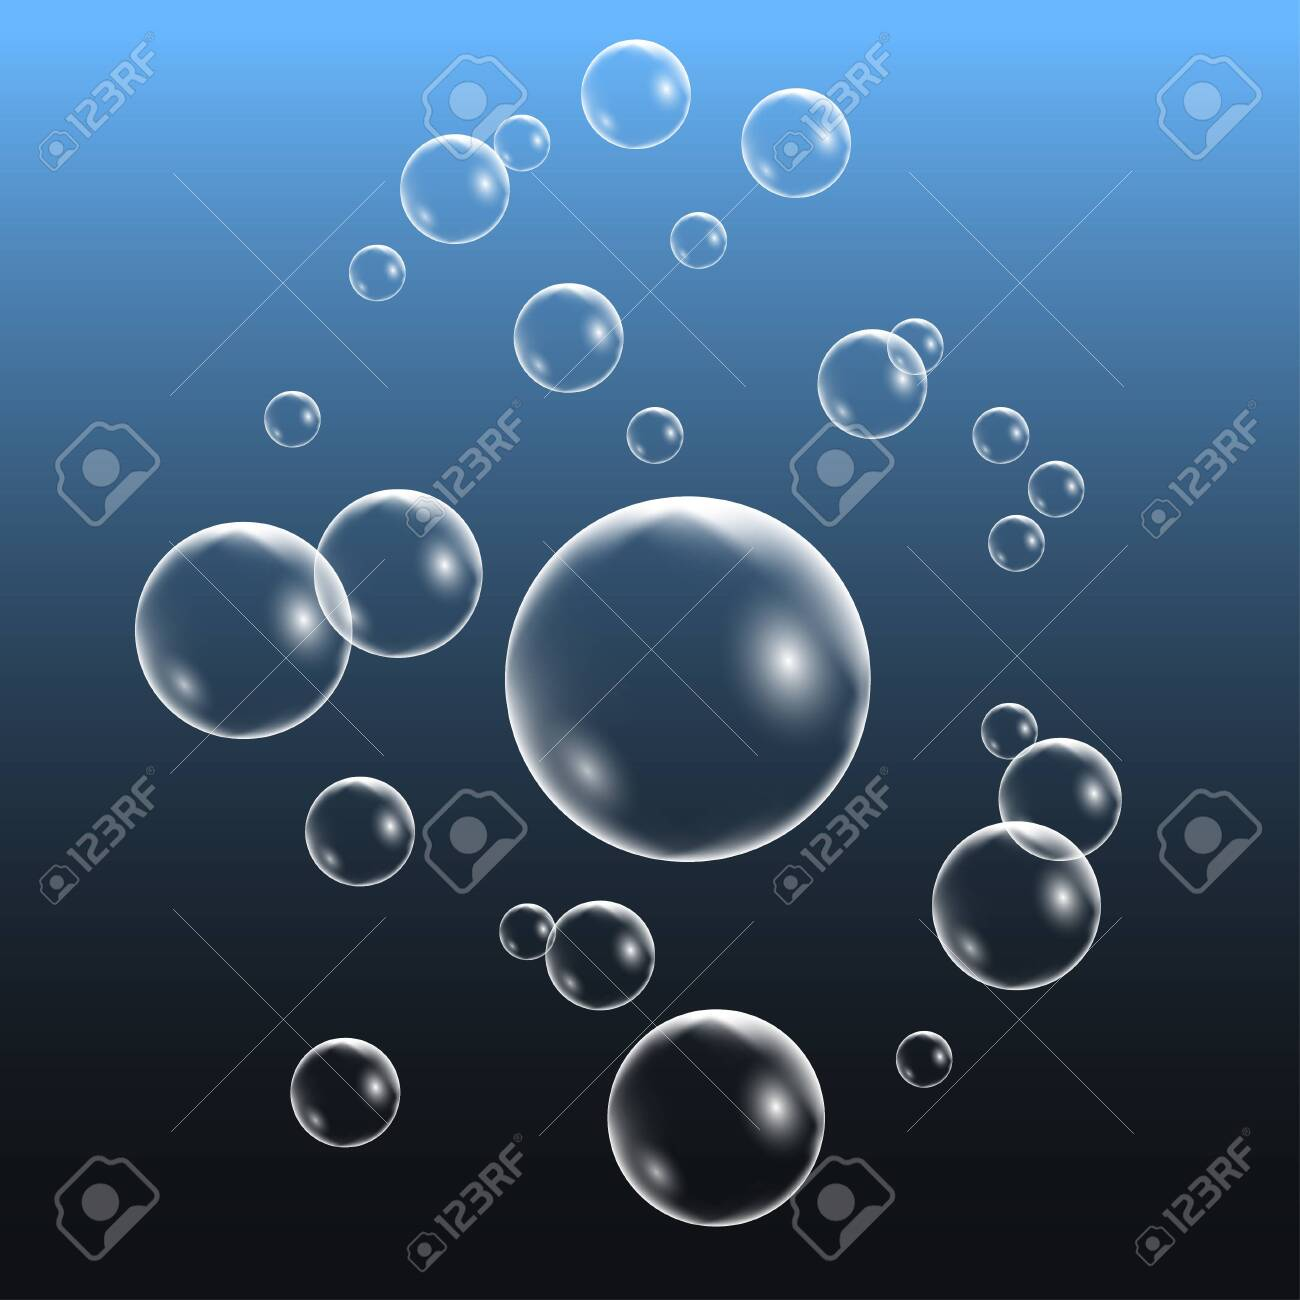 Realistic water bubbles, set of design elements isolated on blue background. Vector illustration - 139010227